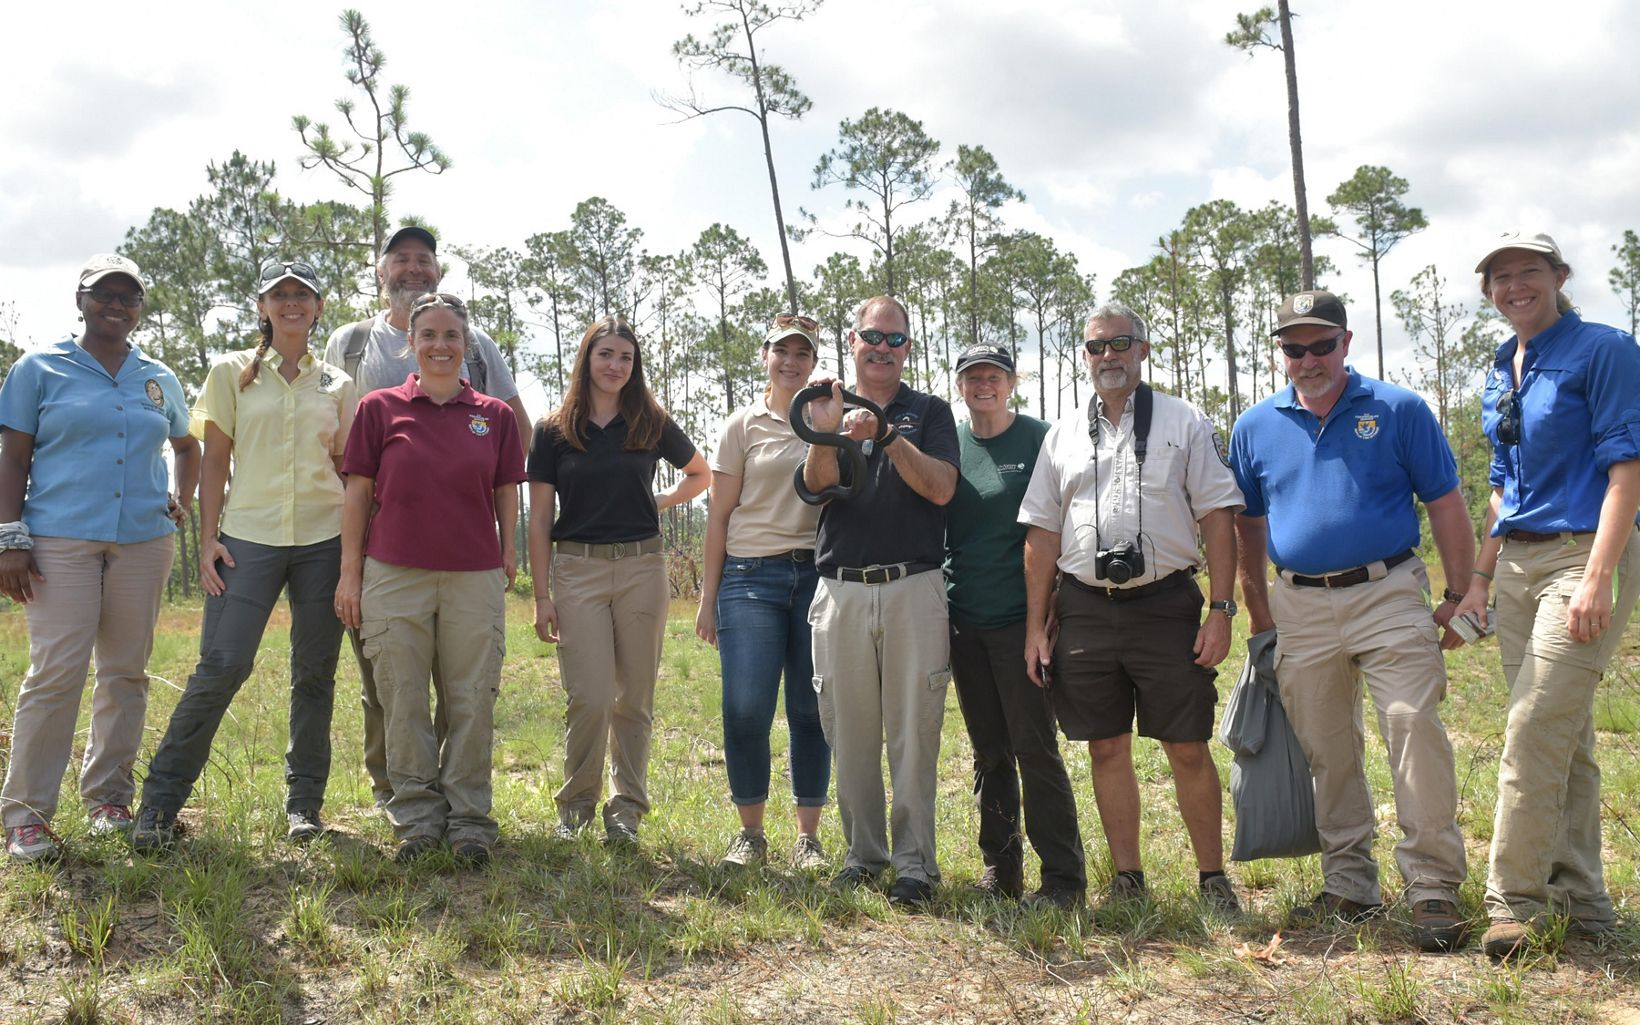 This team of dedicated partners participated in year 3 of the indigo snakes reintroduction plan.